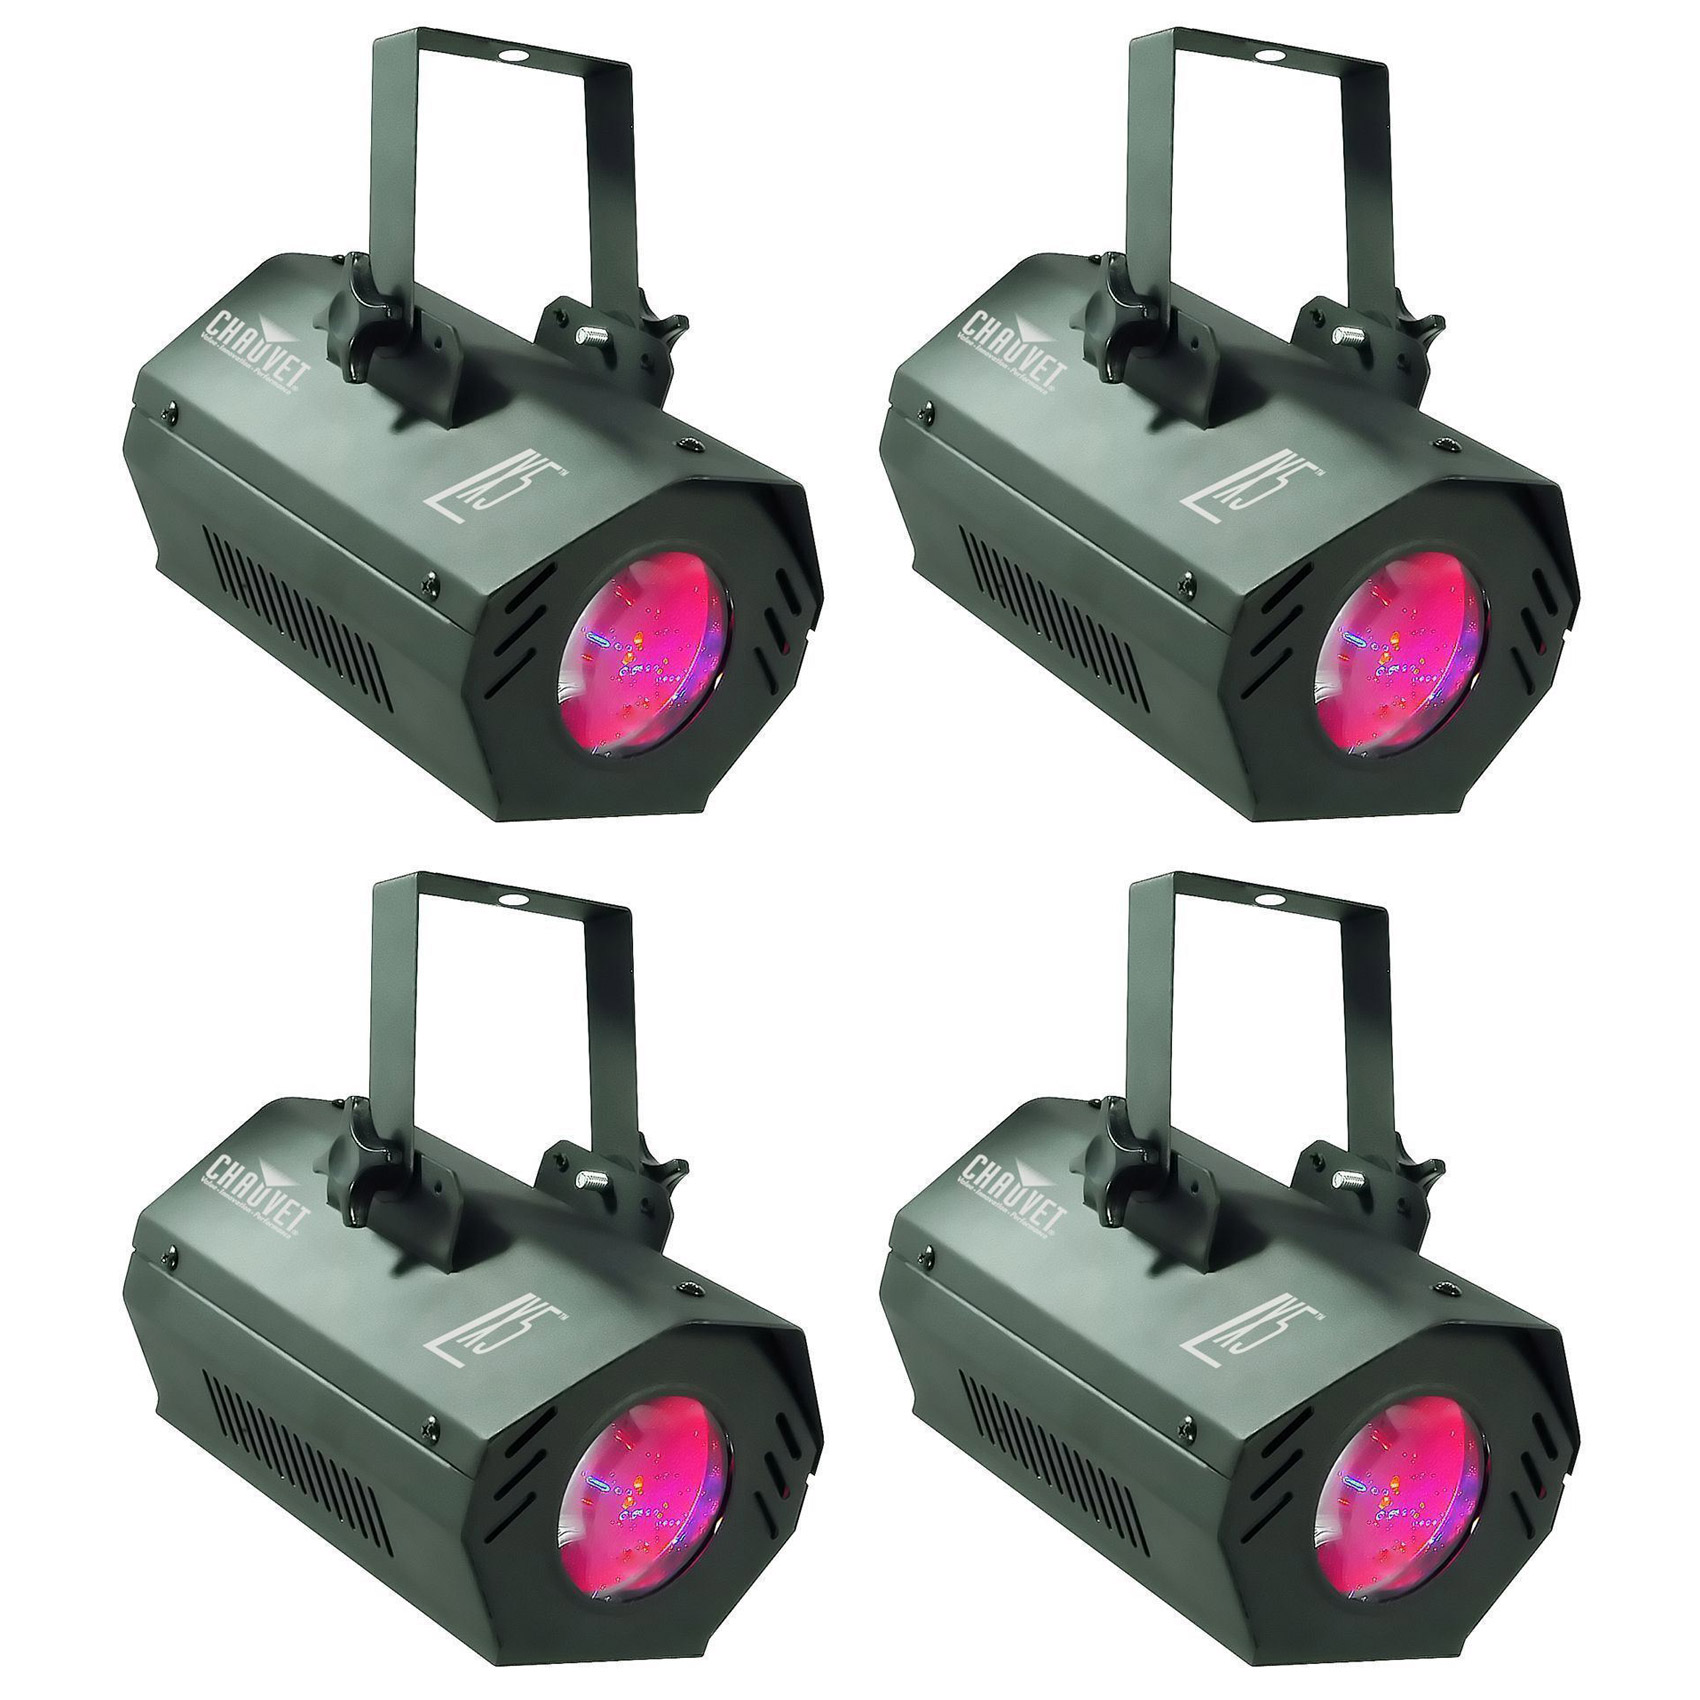 4) Chauvet DJ LX5 Moonflower Sound Activated Dance Club M...